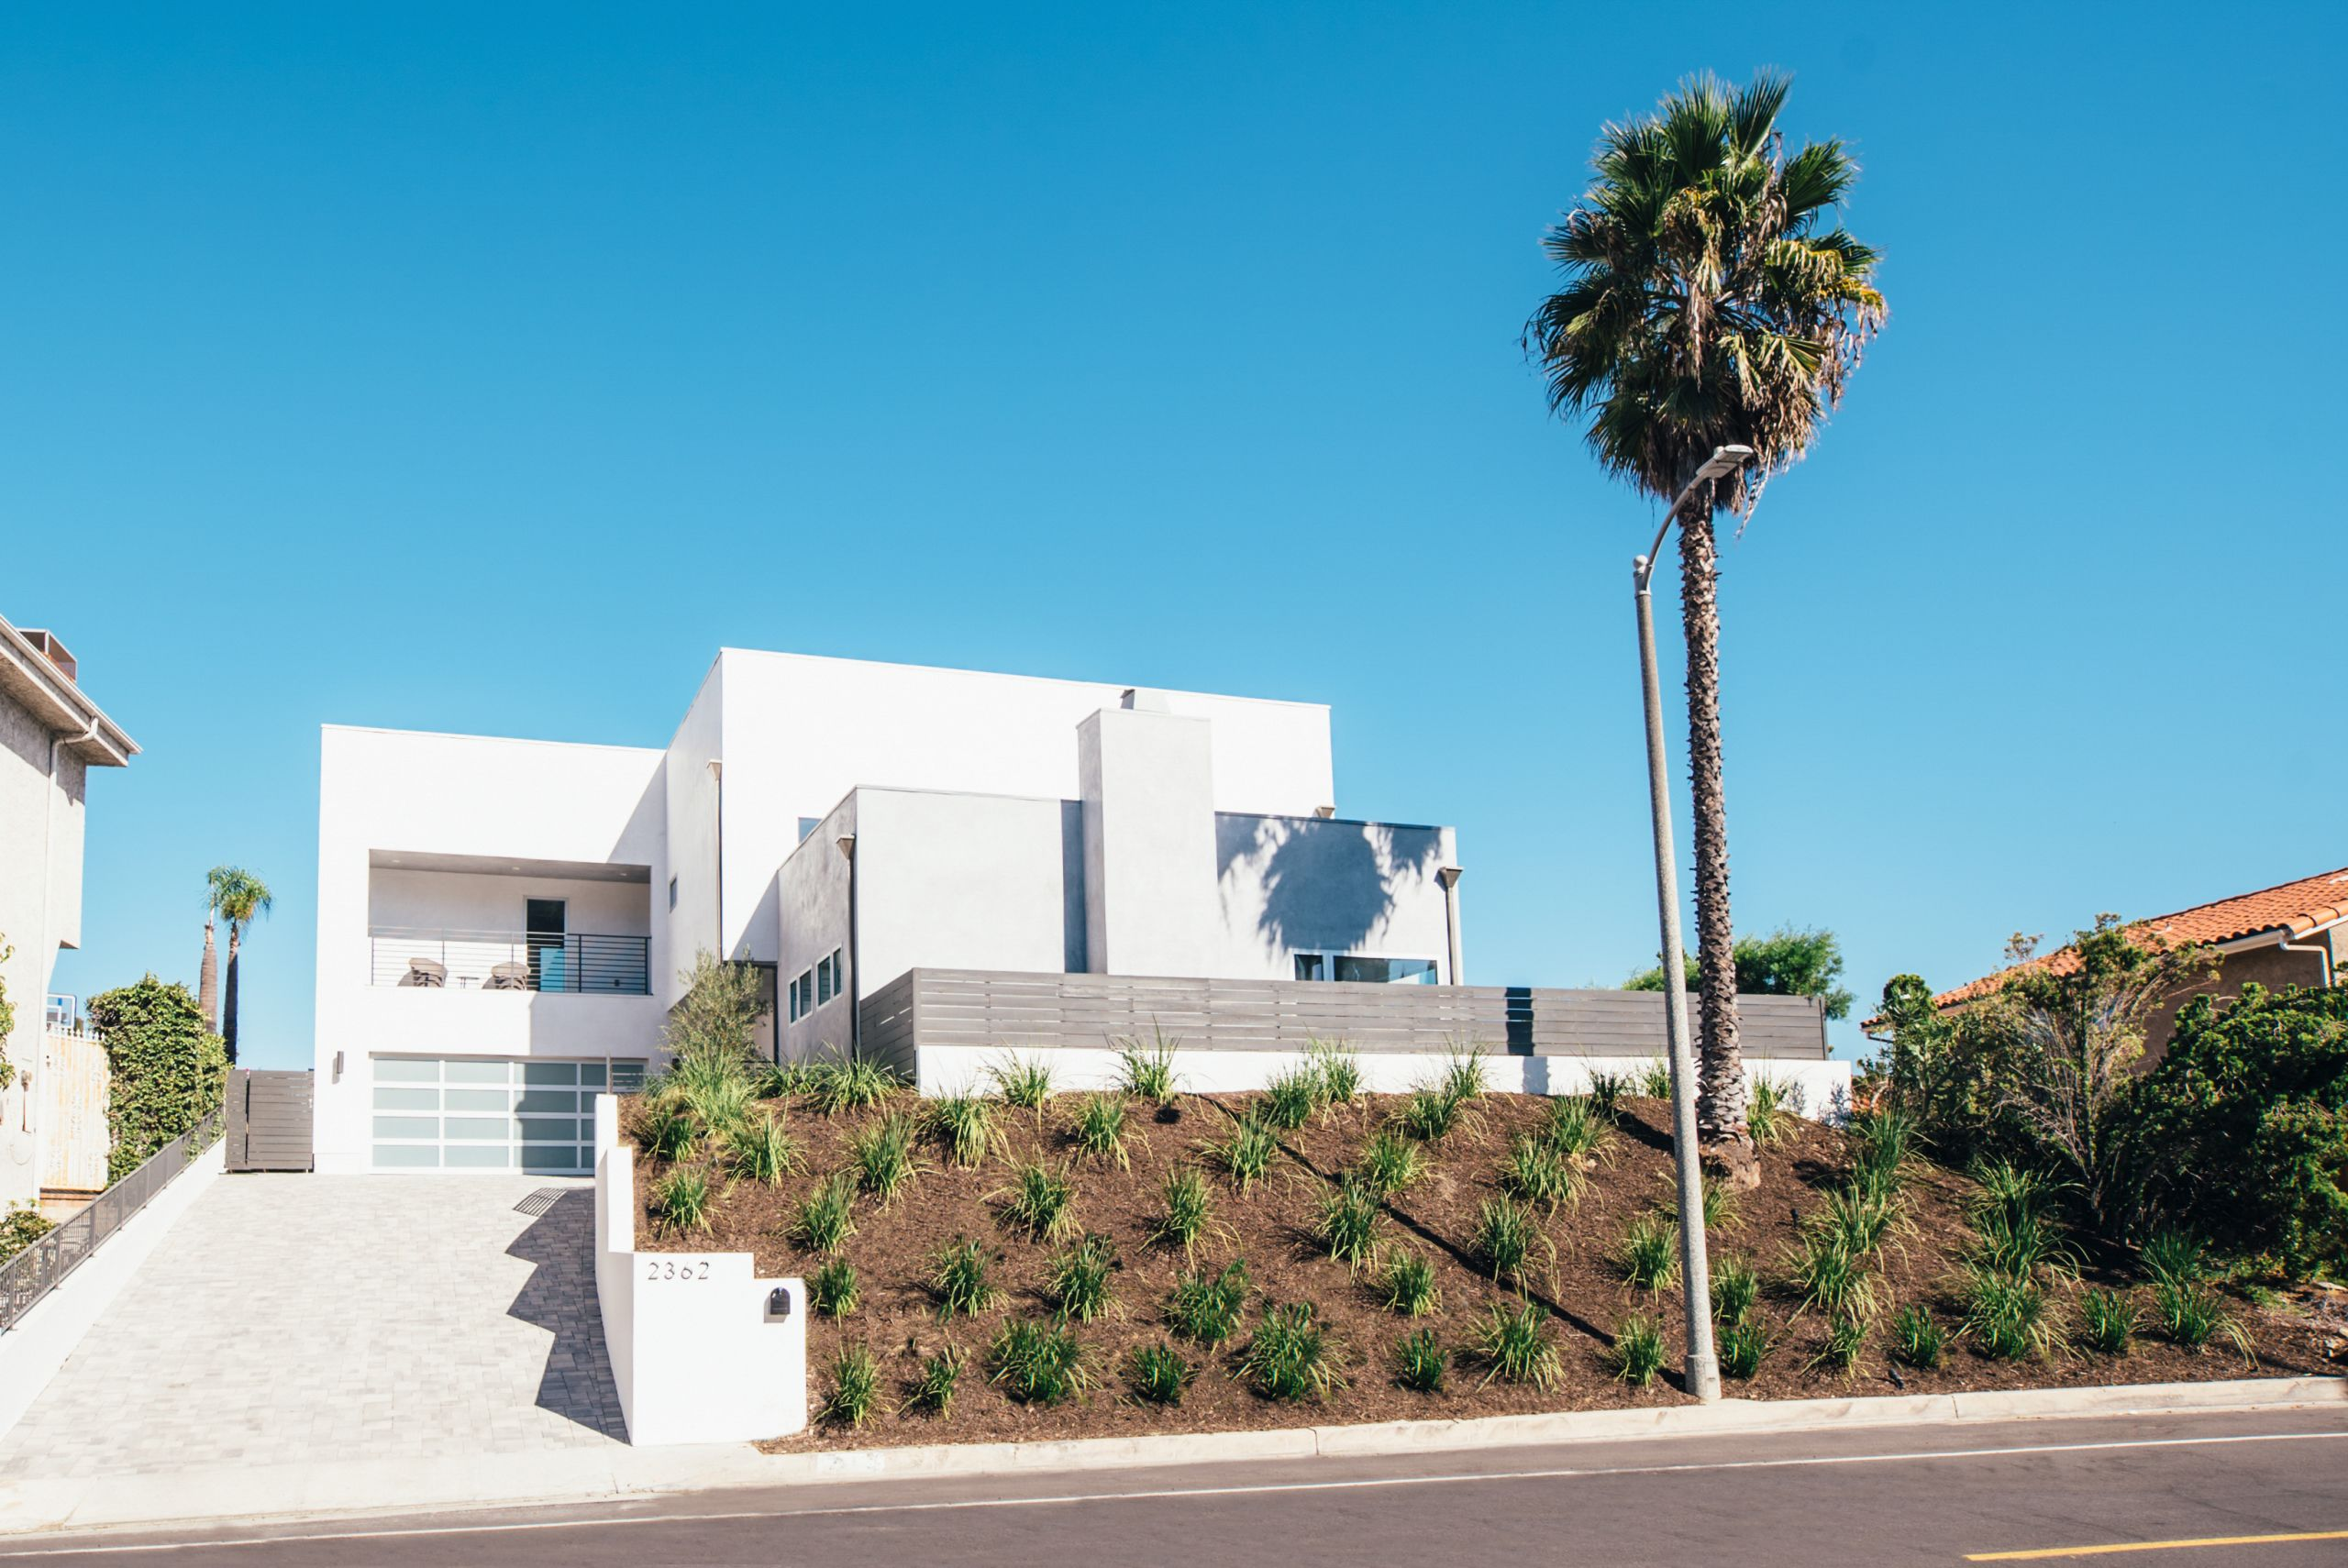 2362 Apollo Drive - Sold - $2,650,000